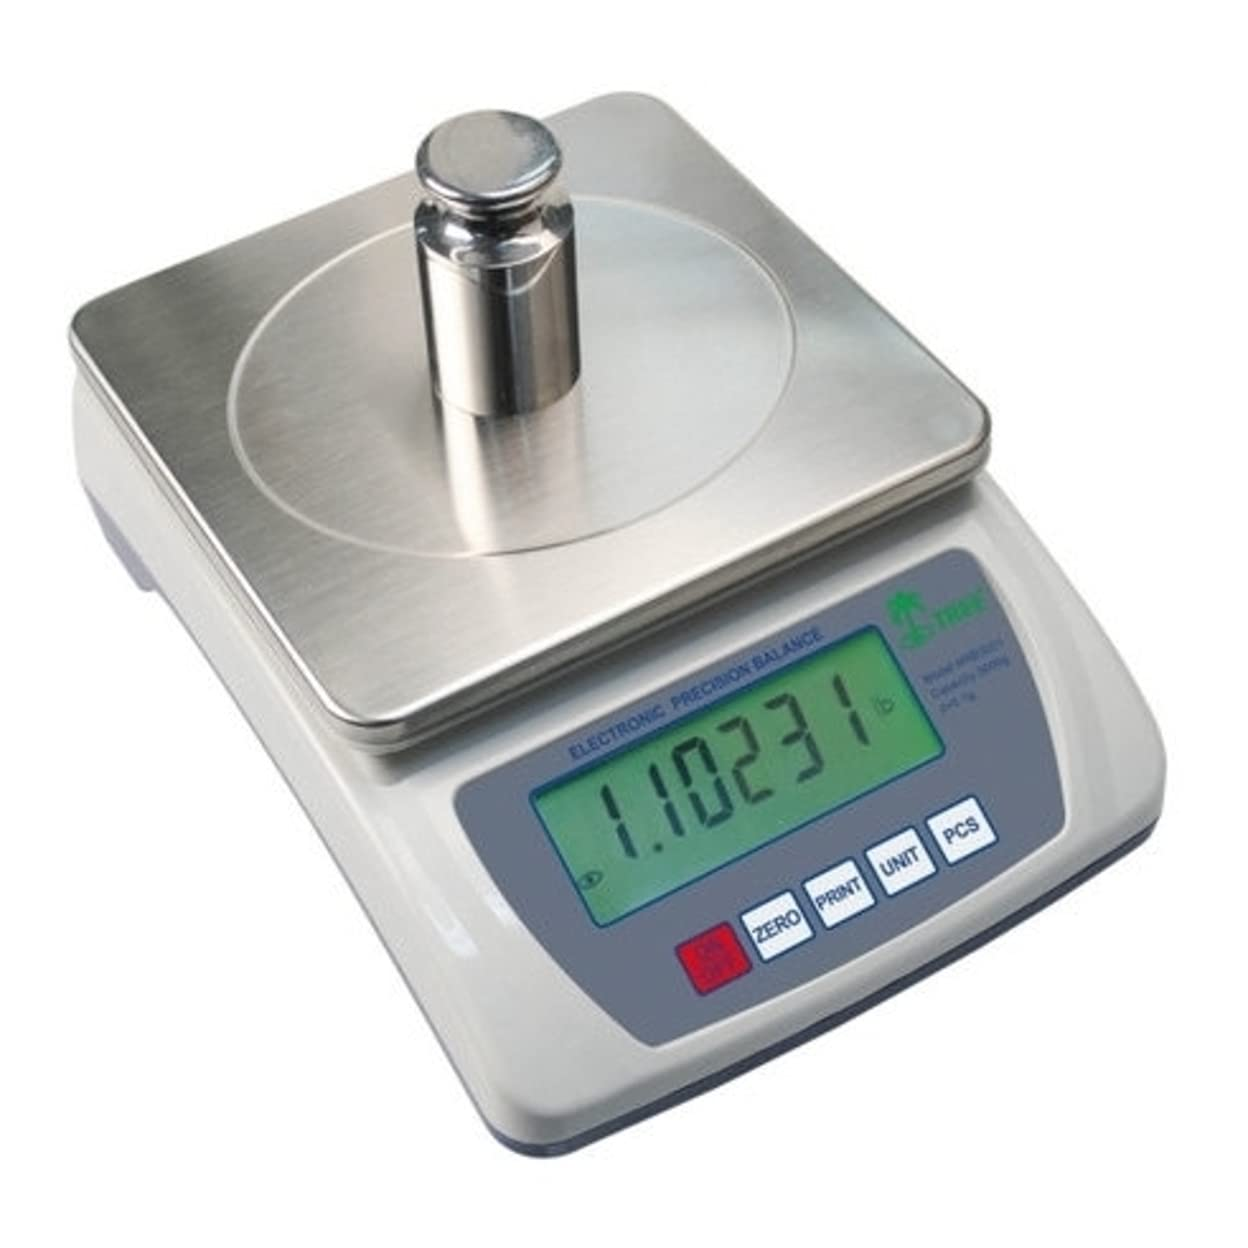 LW Measurements Tree HRB 3002 Portable Precision Weighing Balanc